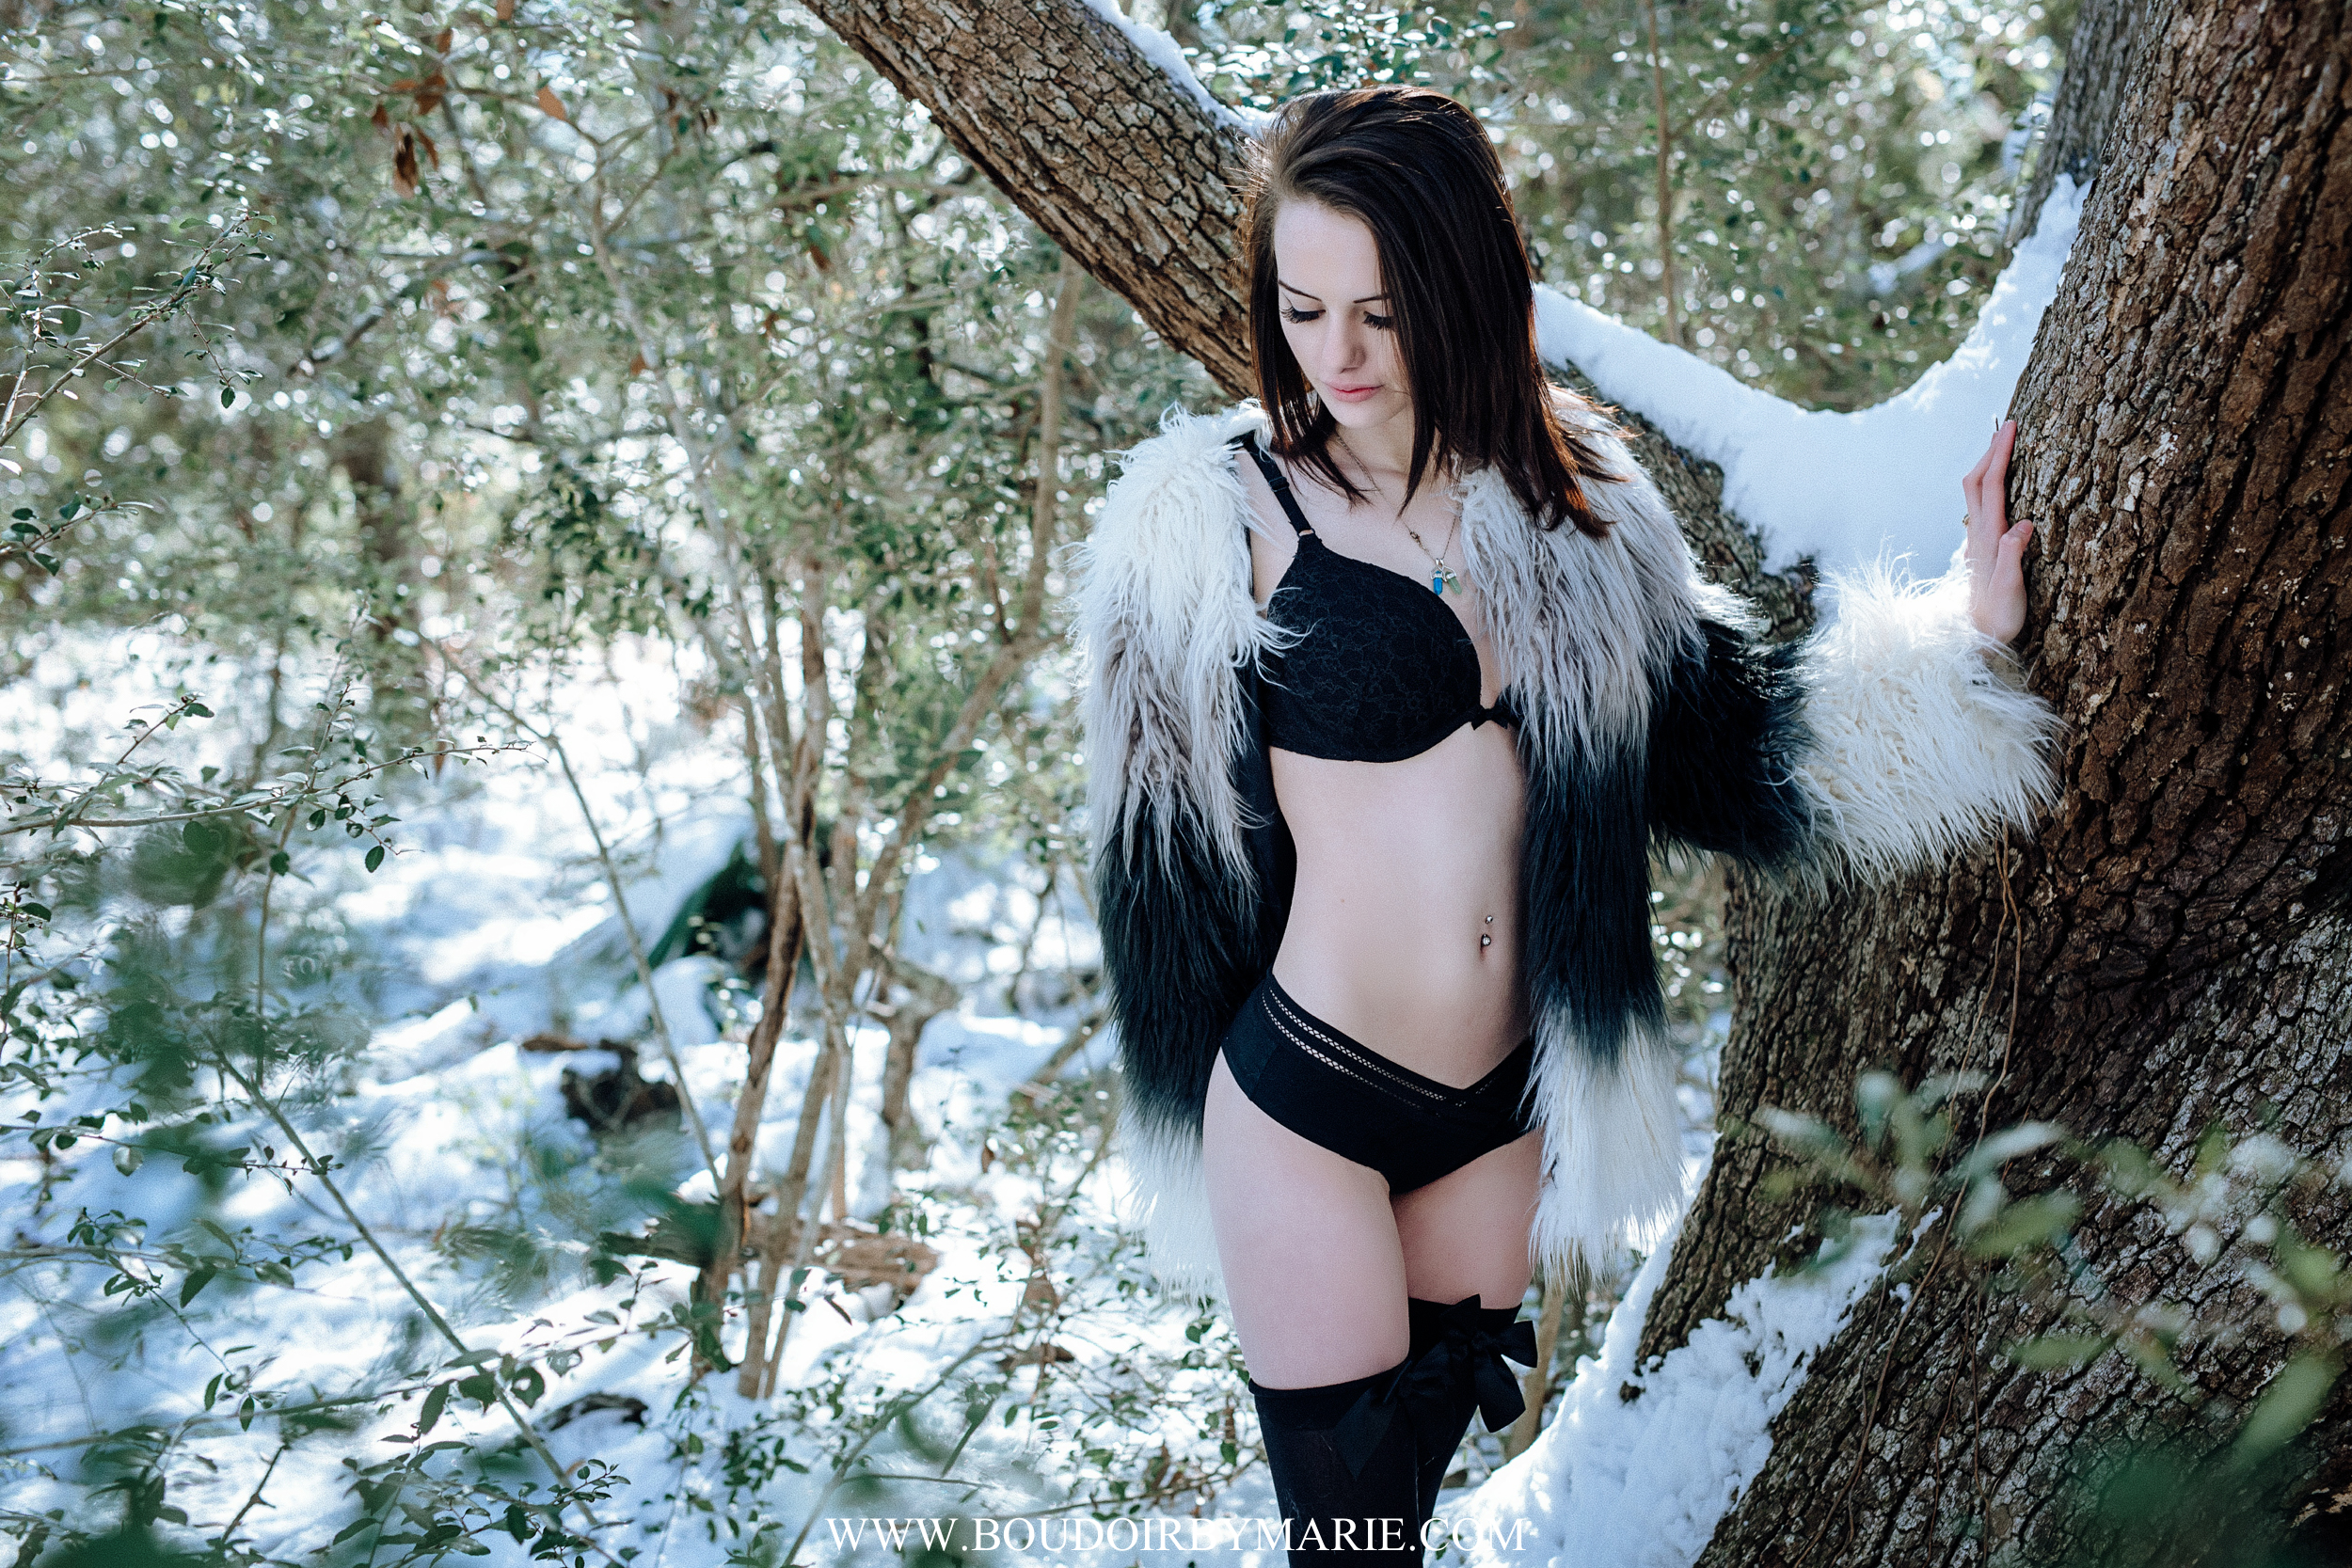 Beautiful winter boudoir photoshoot located outdoors during the South Carolina snowstorm in Charleston.